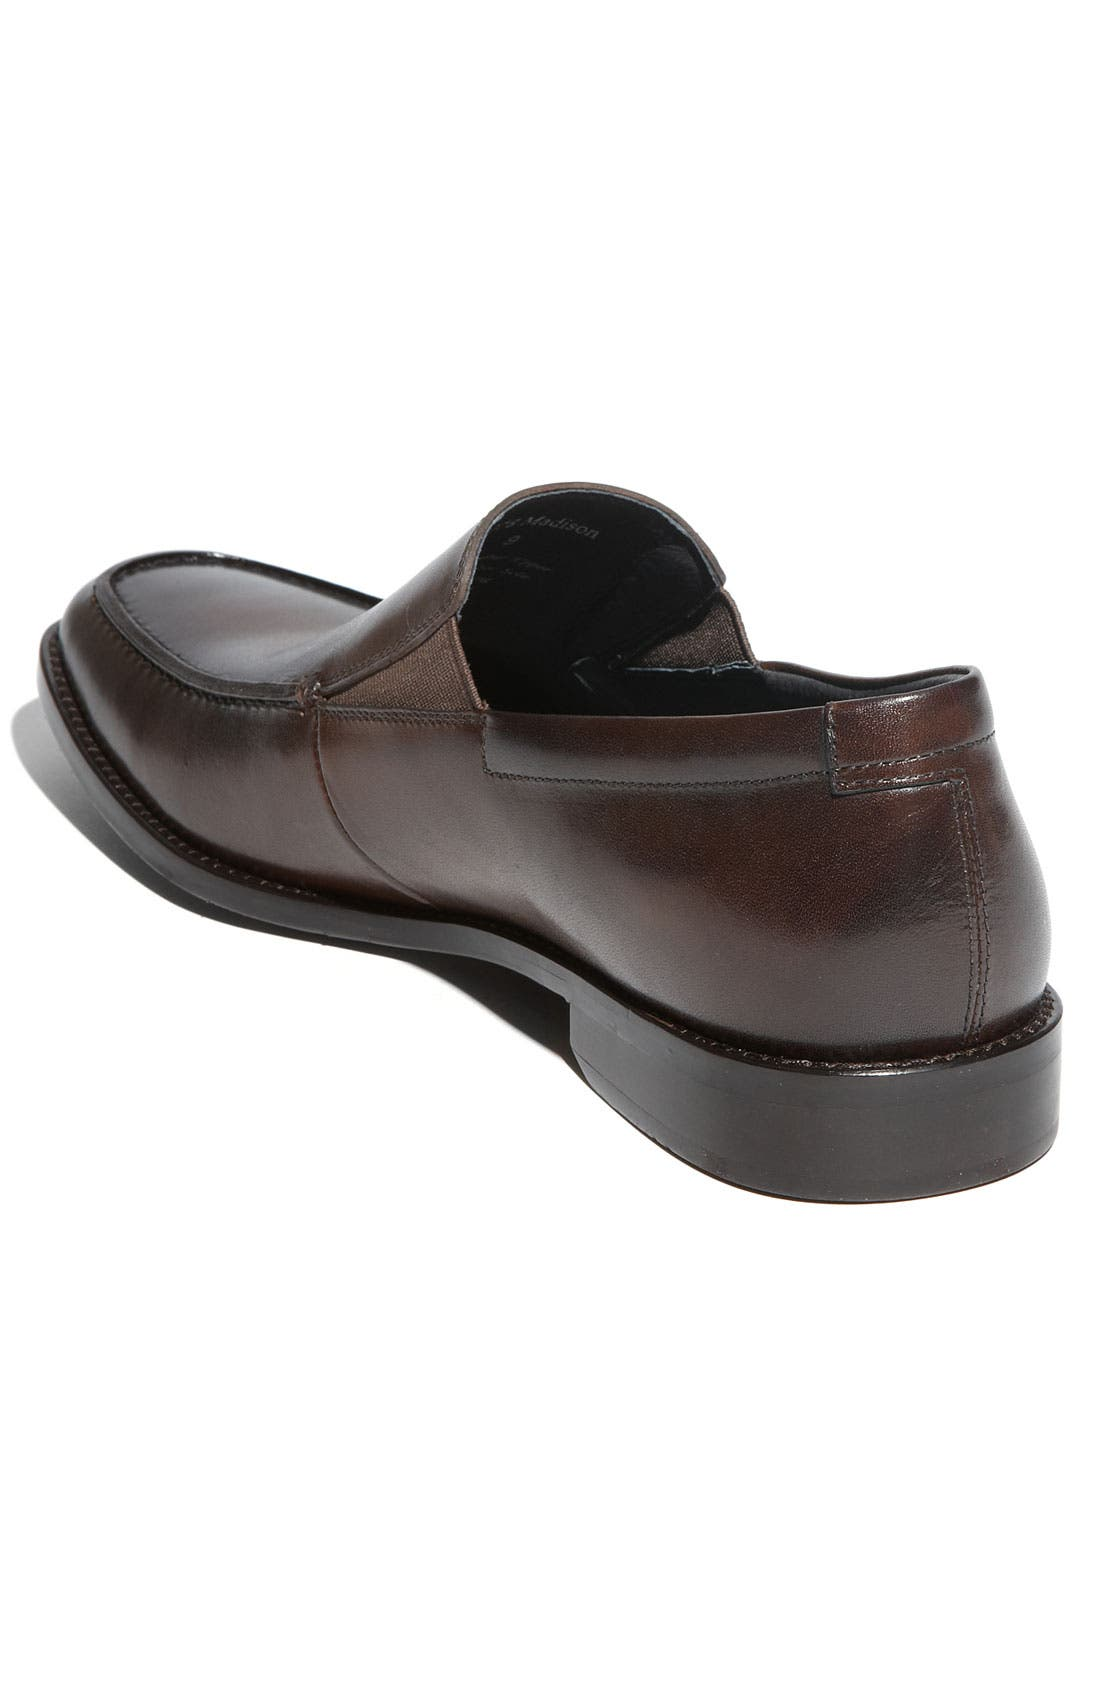 Alternate Image 2  - Gordon Rush 'Madison' Venetian Loafer (Men)